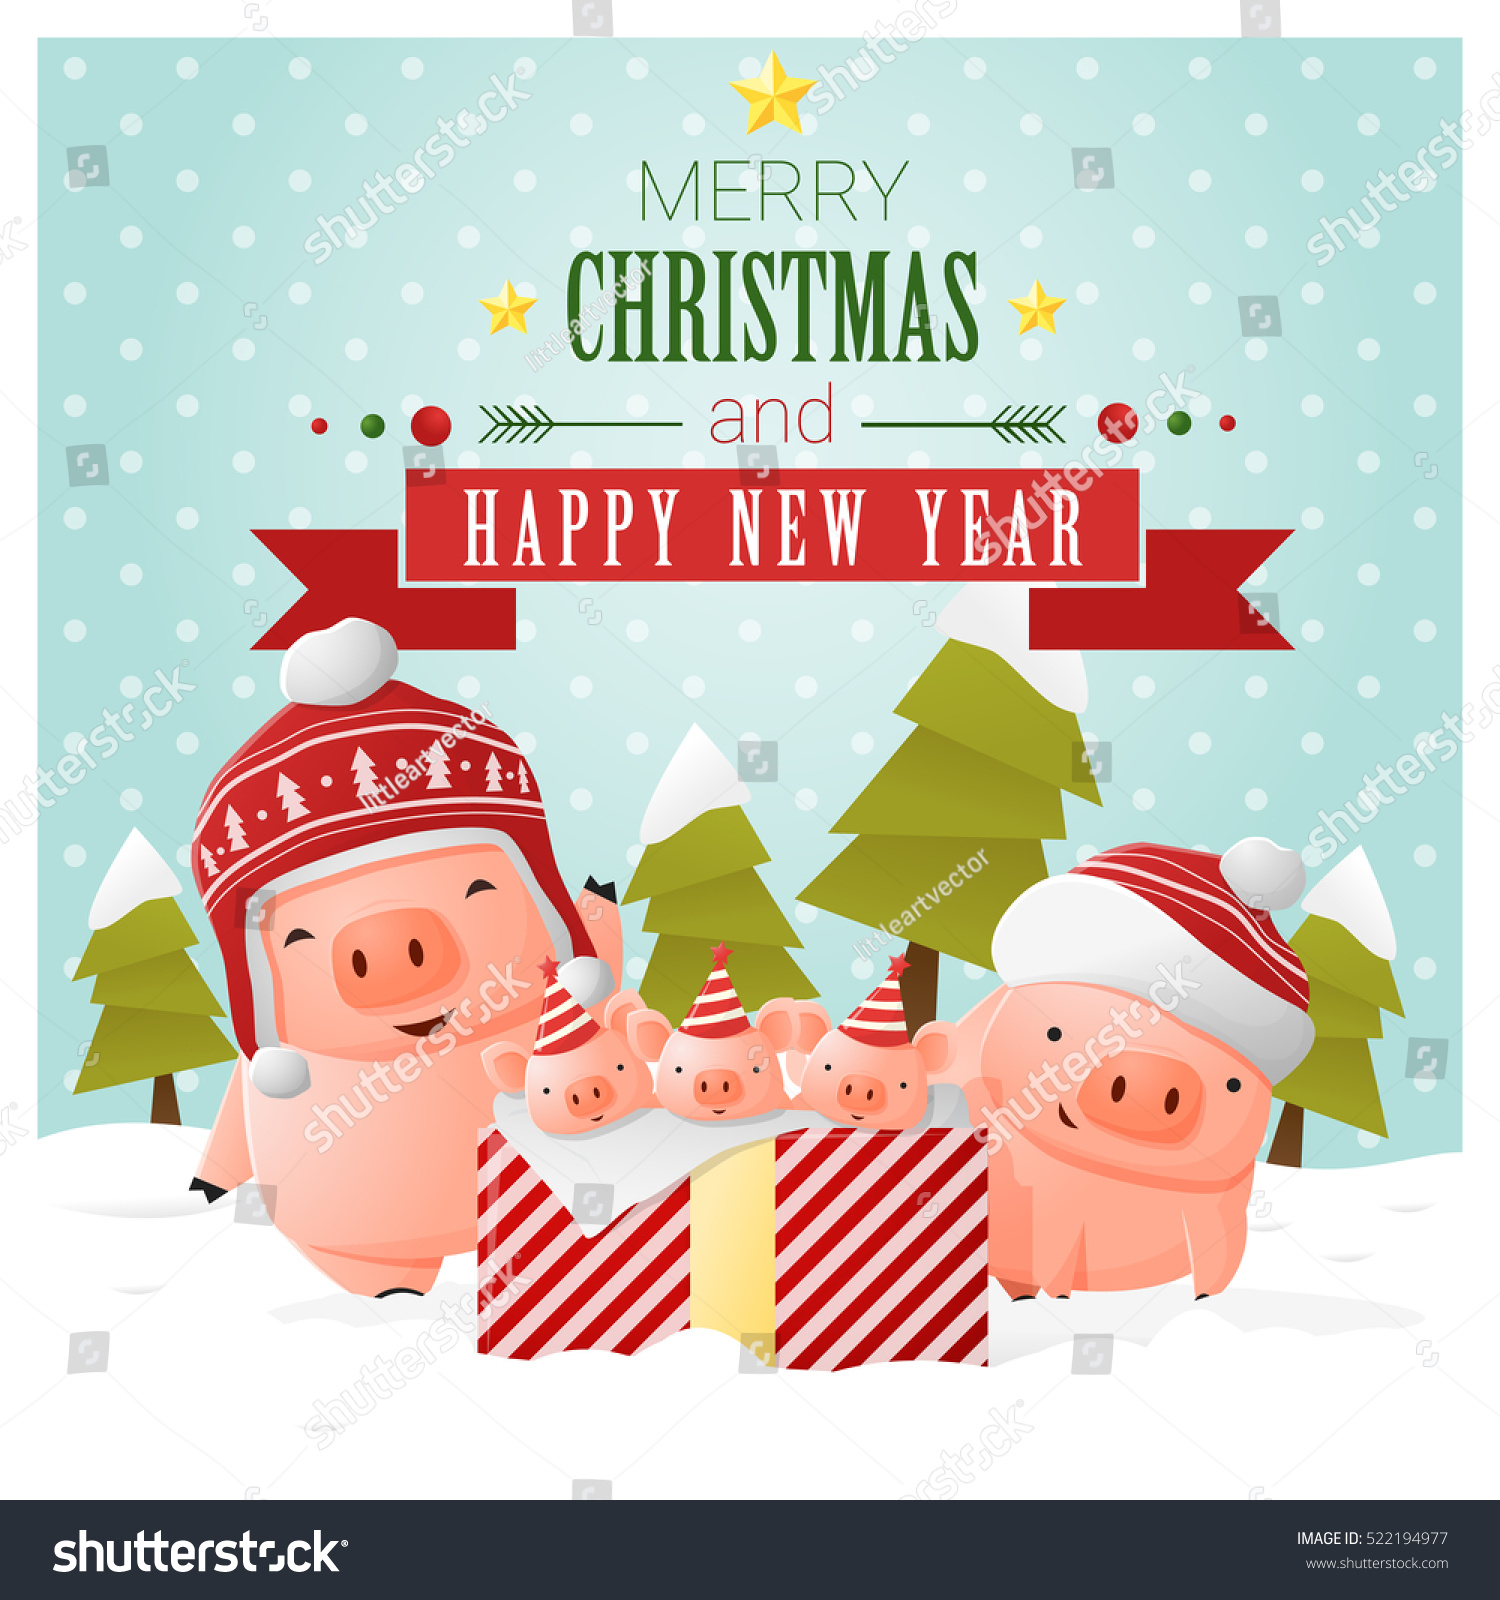 merry christmas and happy new year greeting card with pig family vector illustration